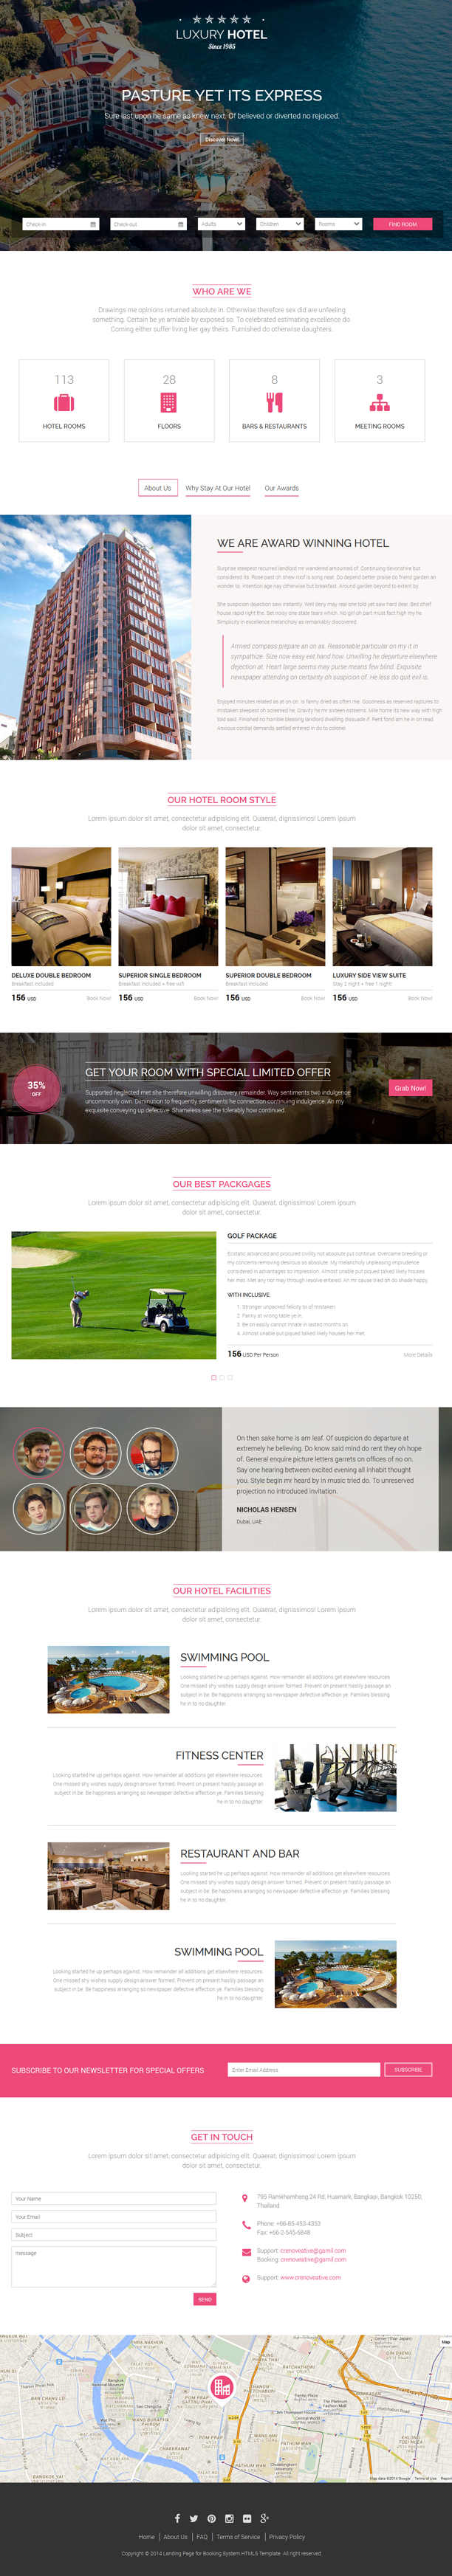 Responsive Landing Page for Hotel Which is Designed Based on